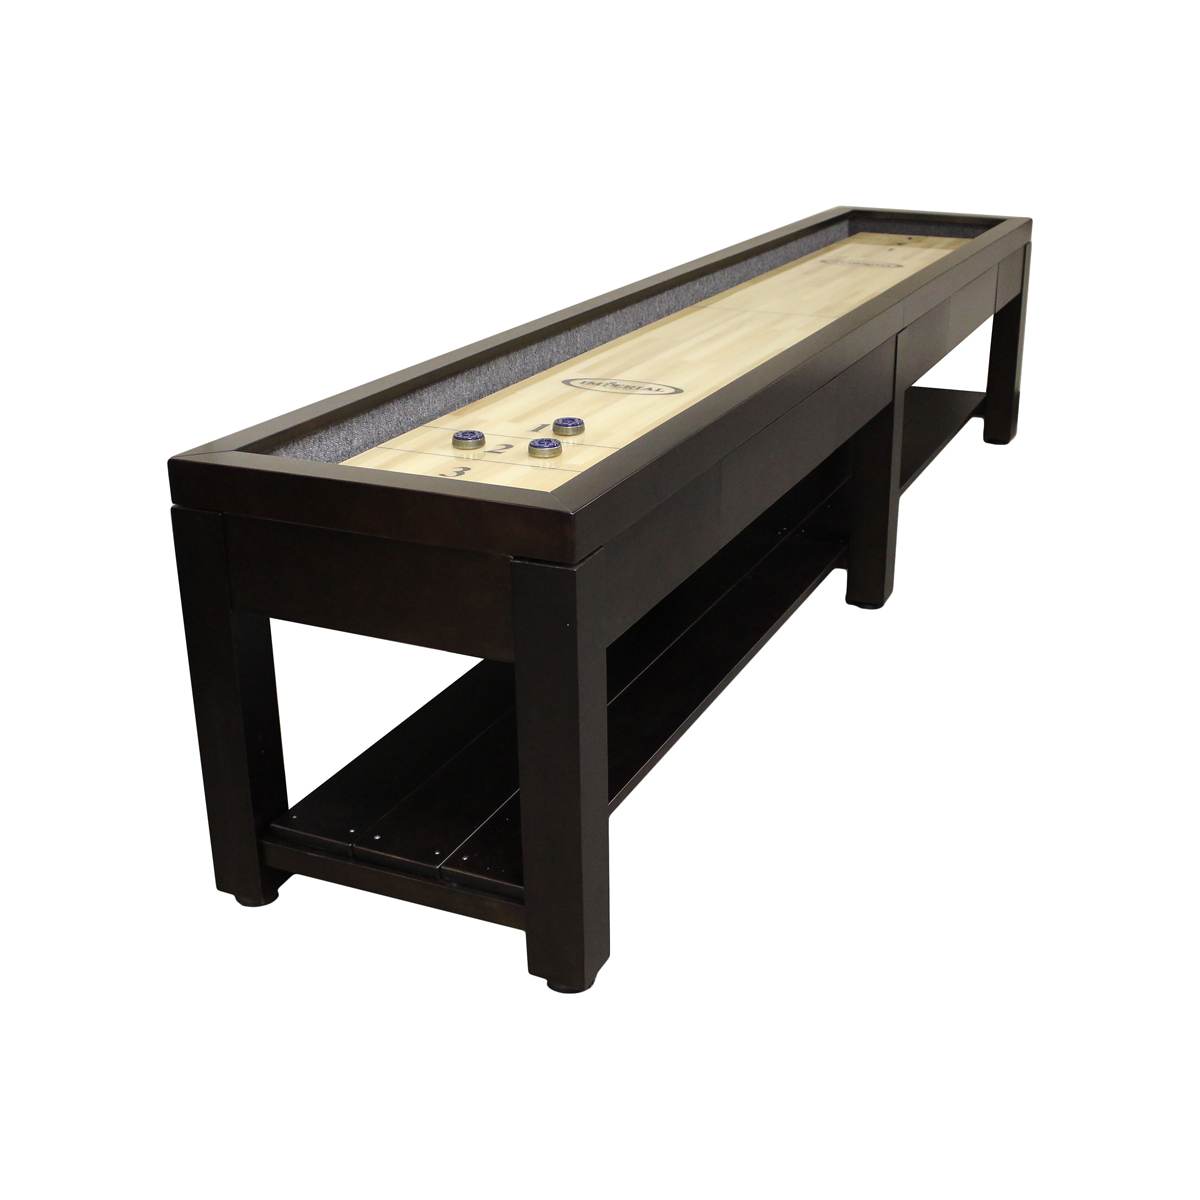 12-ft. Shuffleboard Table with dining top